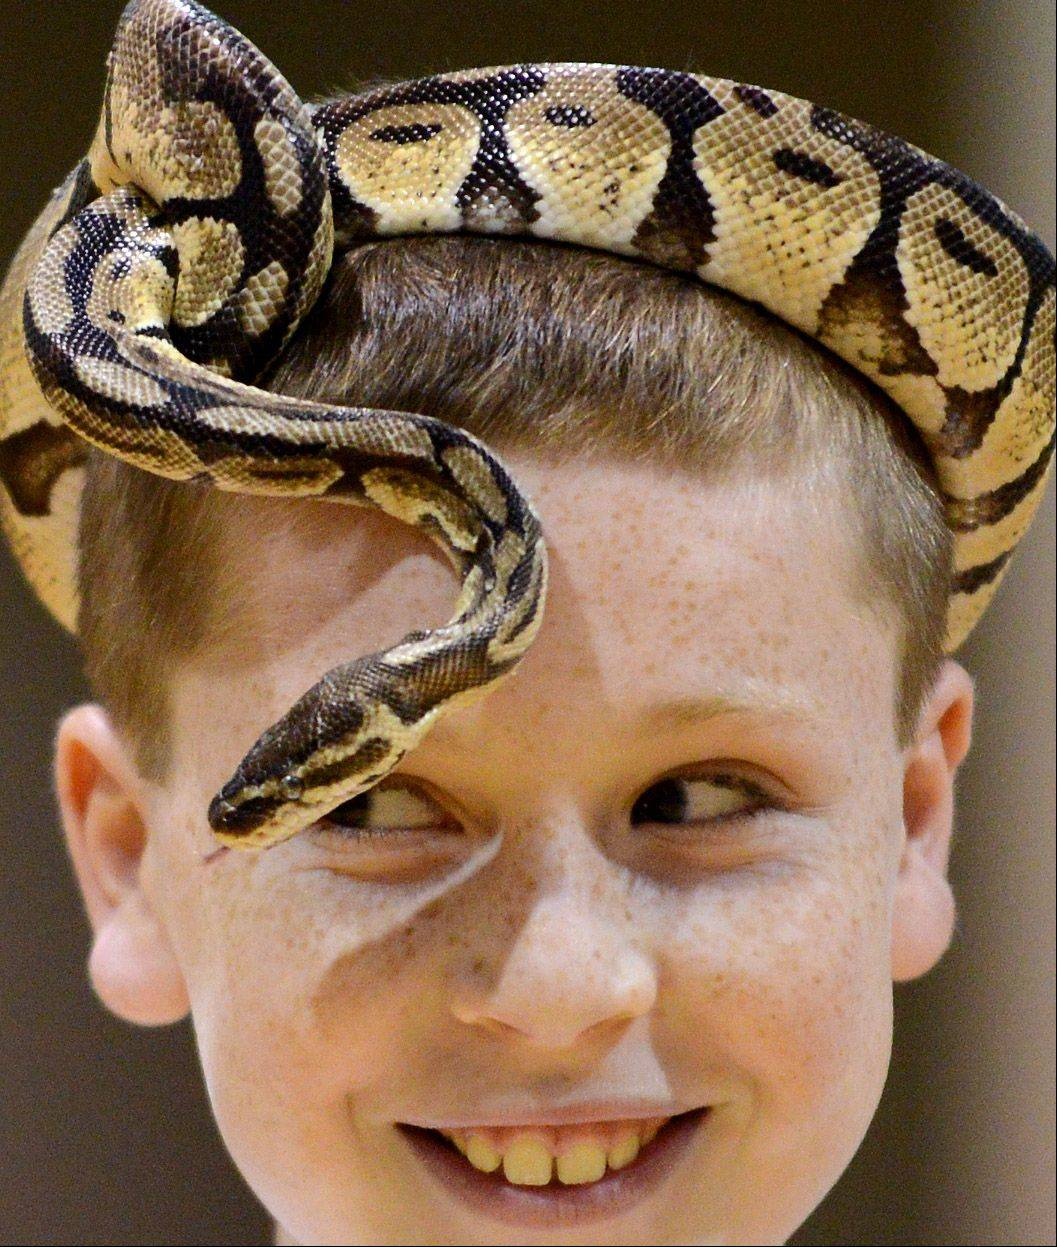 5th-grader Sam Hoying keeps a close eye on the movements of his python hat during a visit from Dave Dinaso's Traveling World of Reptiles at St. Peter School in Geneva Tuesday.